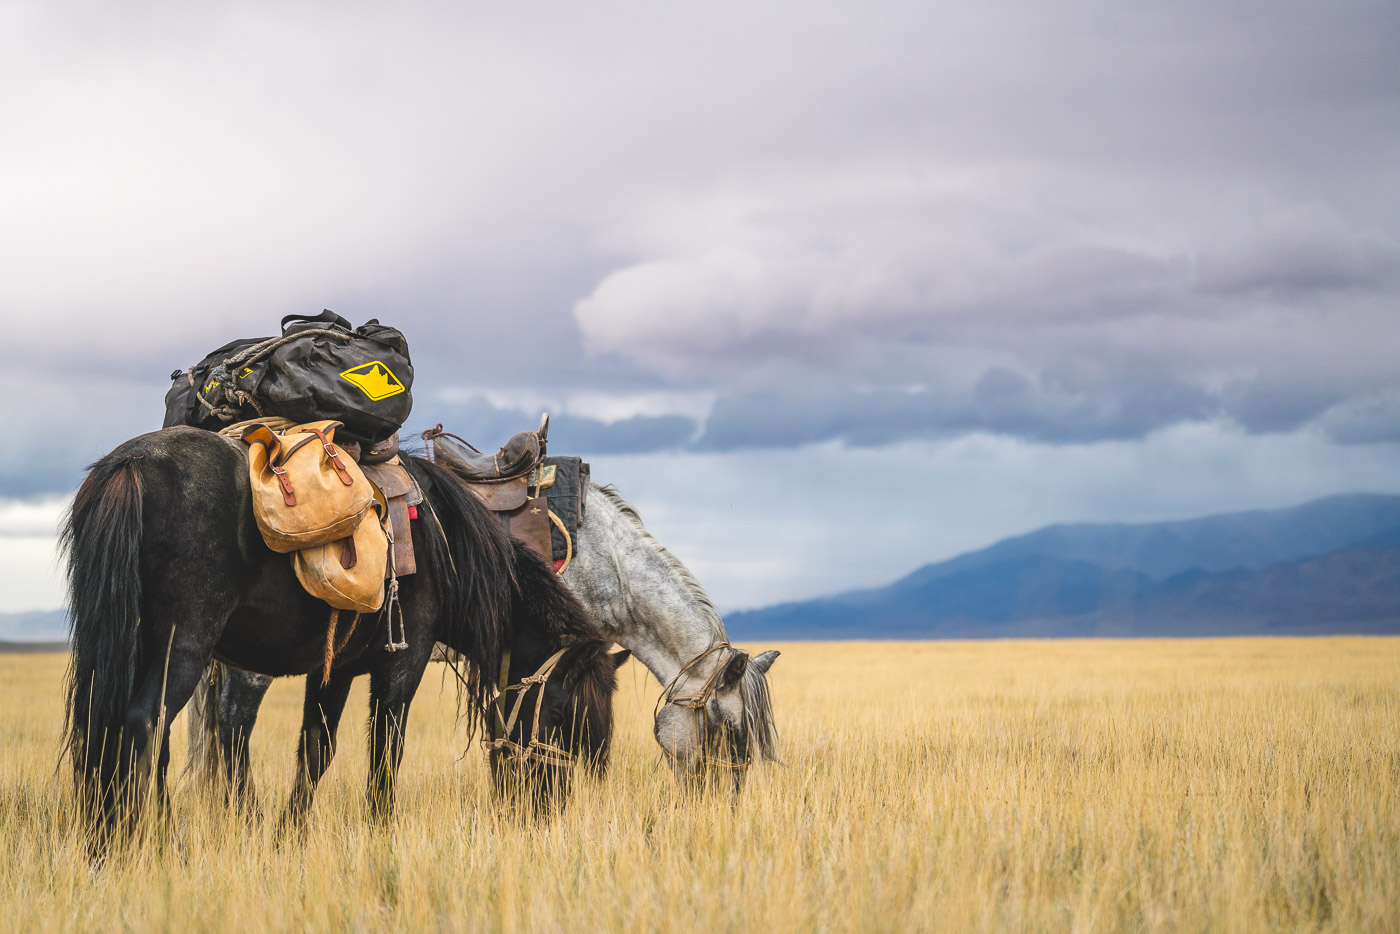 Stefan_Haworth-conquering-the-fear-horse-riding-in-mongolia-00225